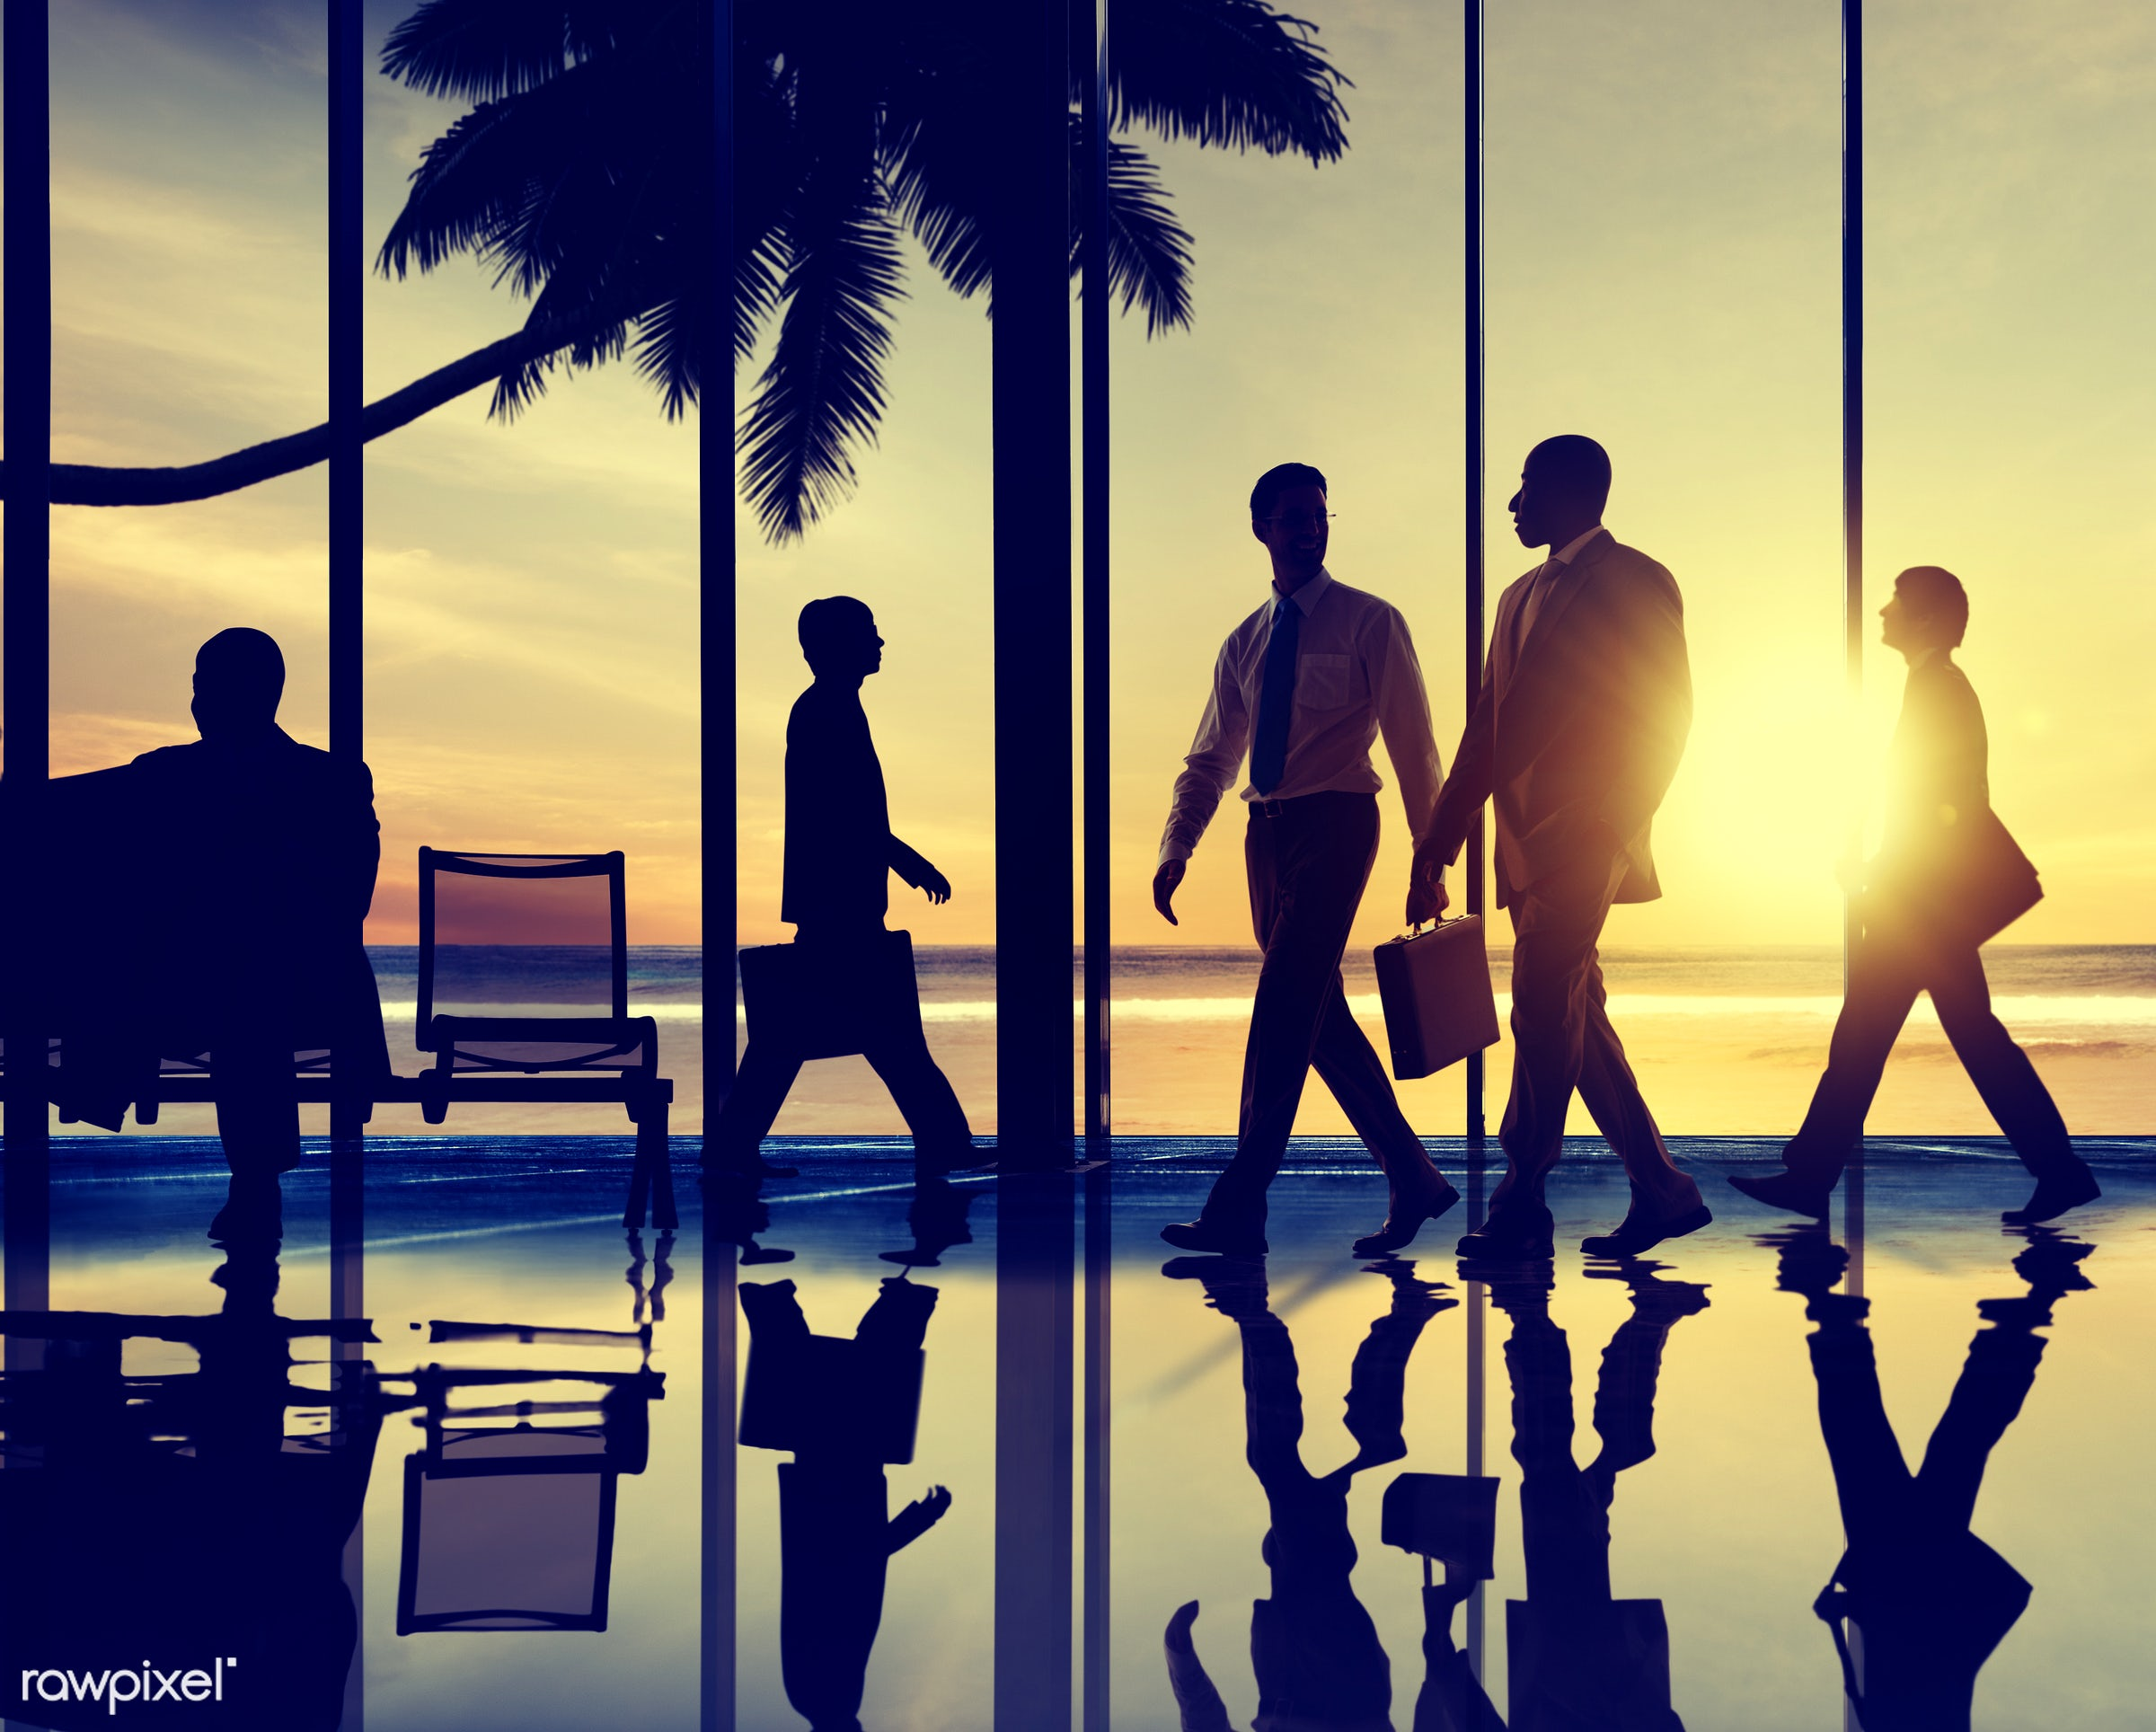 airline, airplane, airport, arrival, back lit, beach, business, business people, business travel, businessmen, businesswomen...